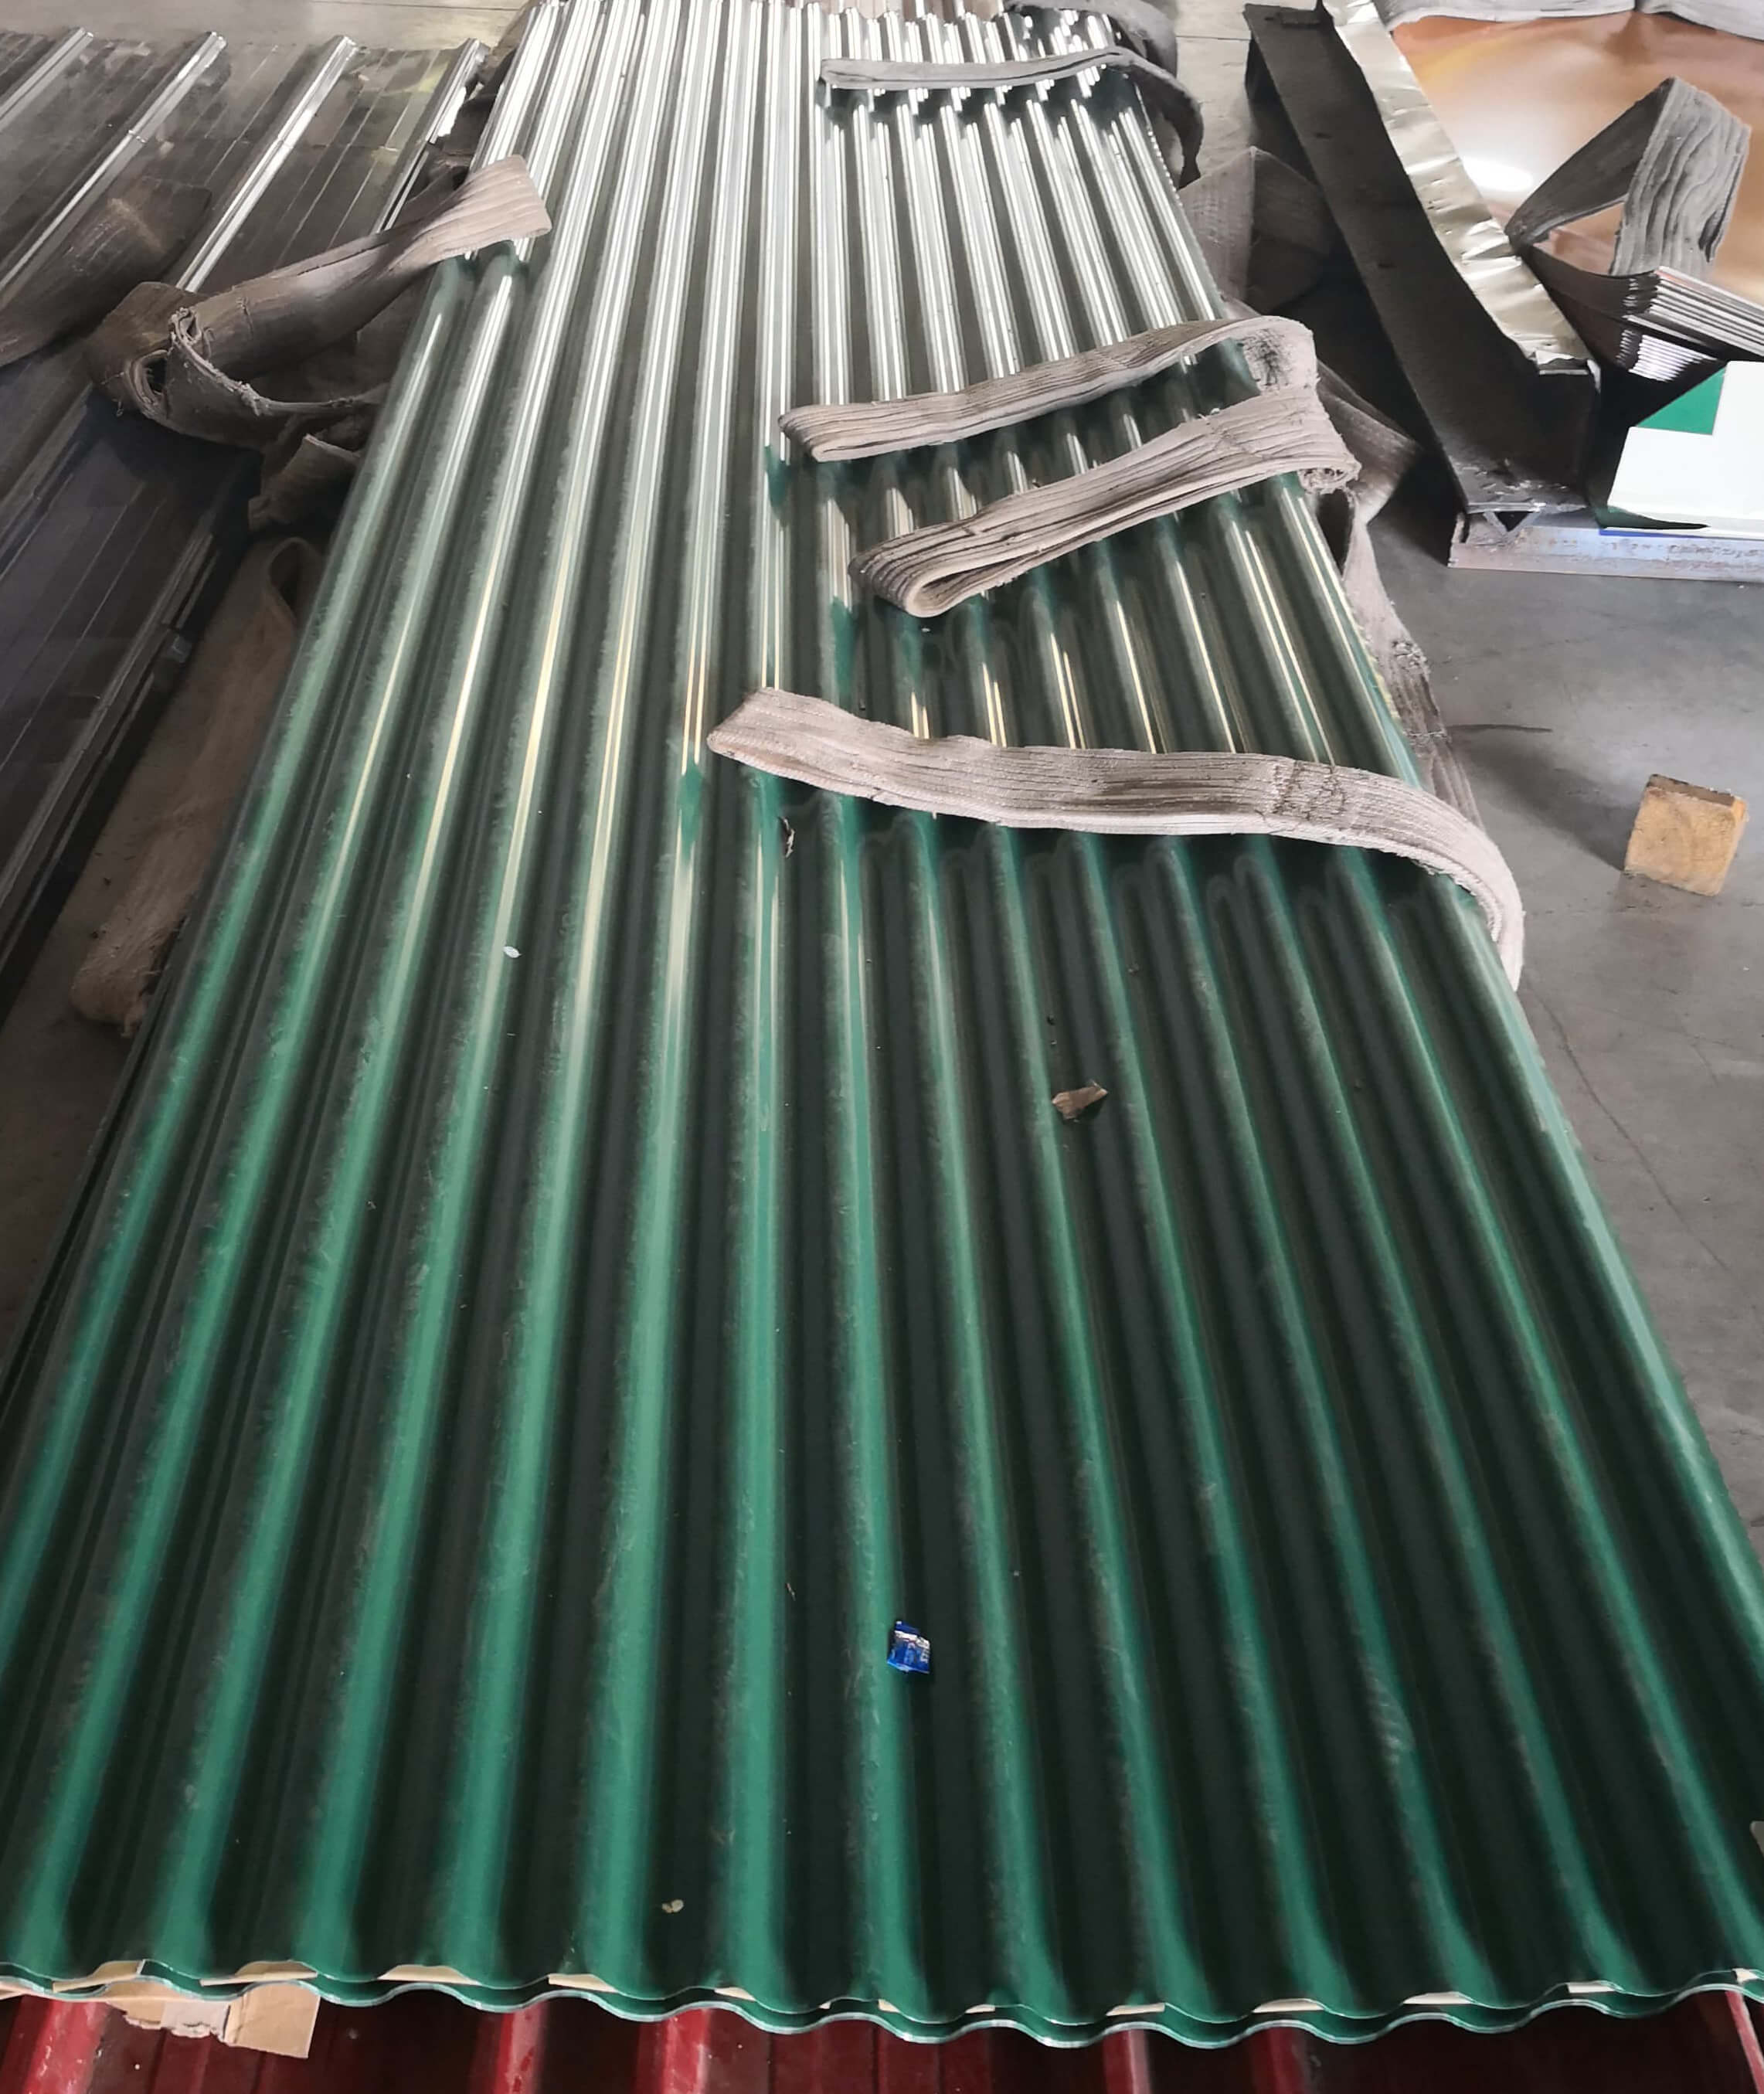 Corrugated Roof Alpha Steel Roofing Supplier With Delivery In The Philippines